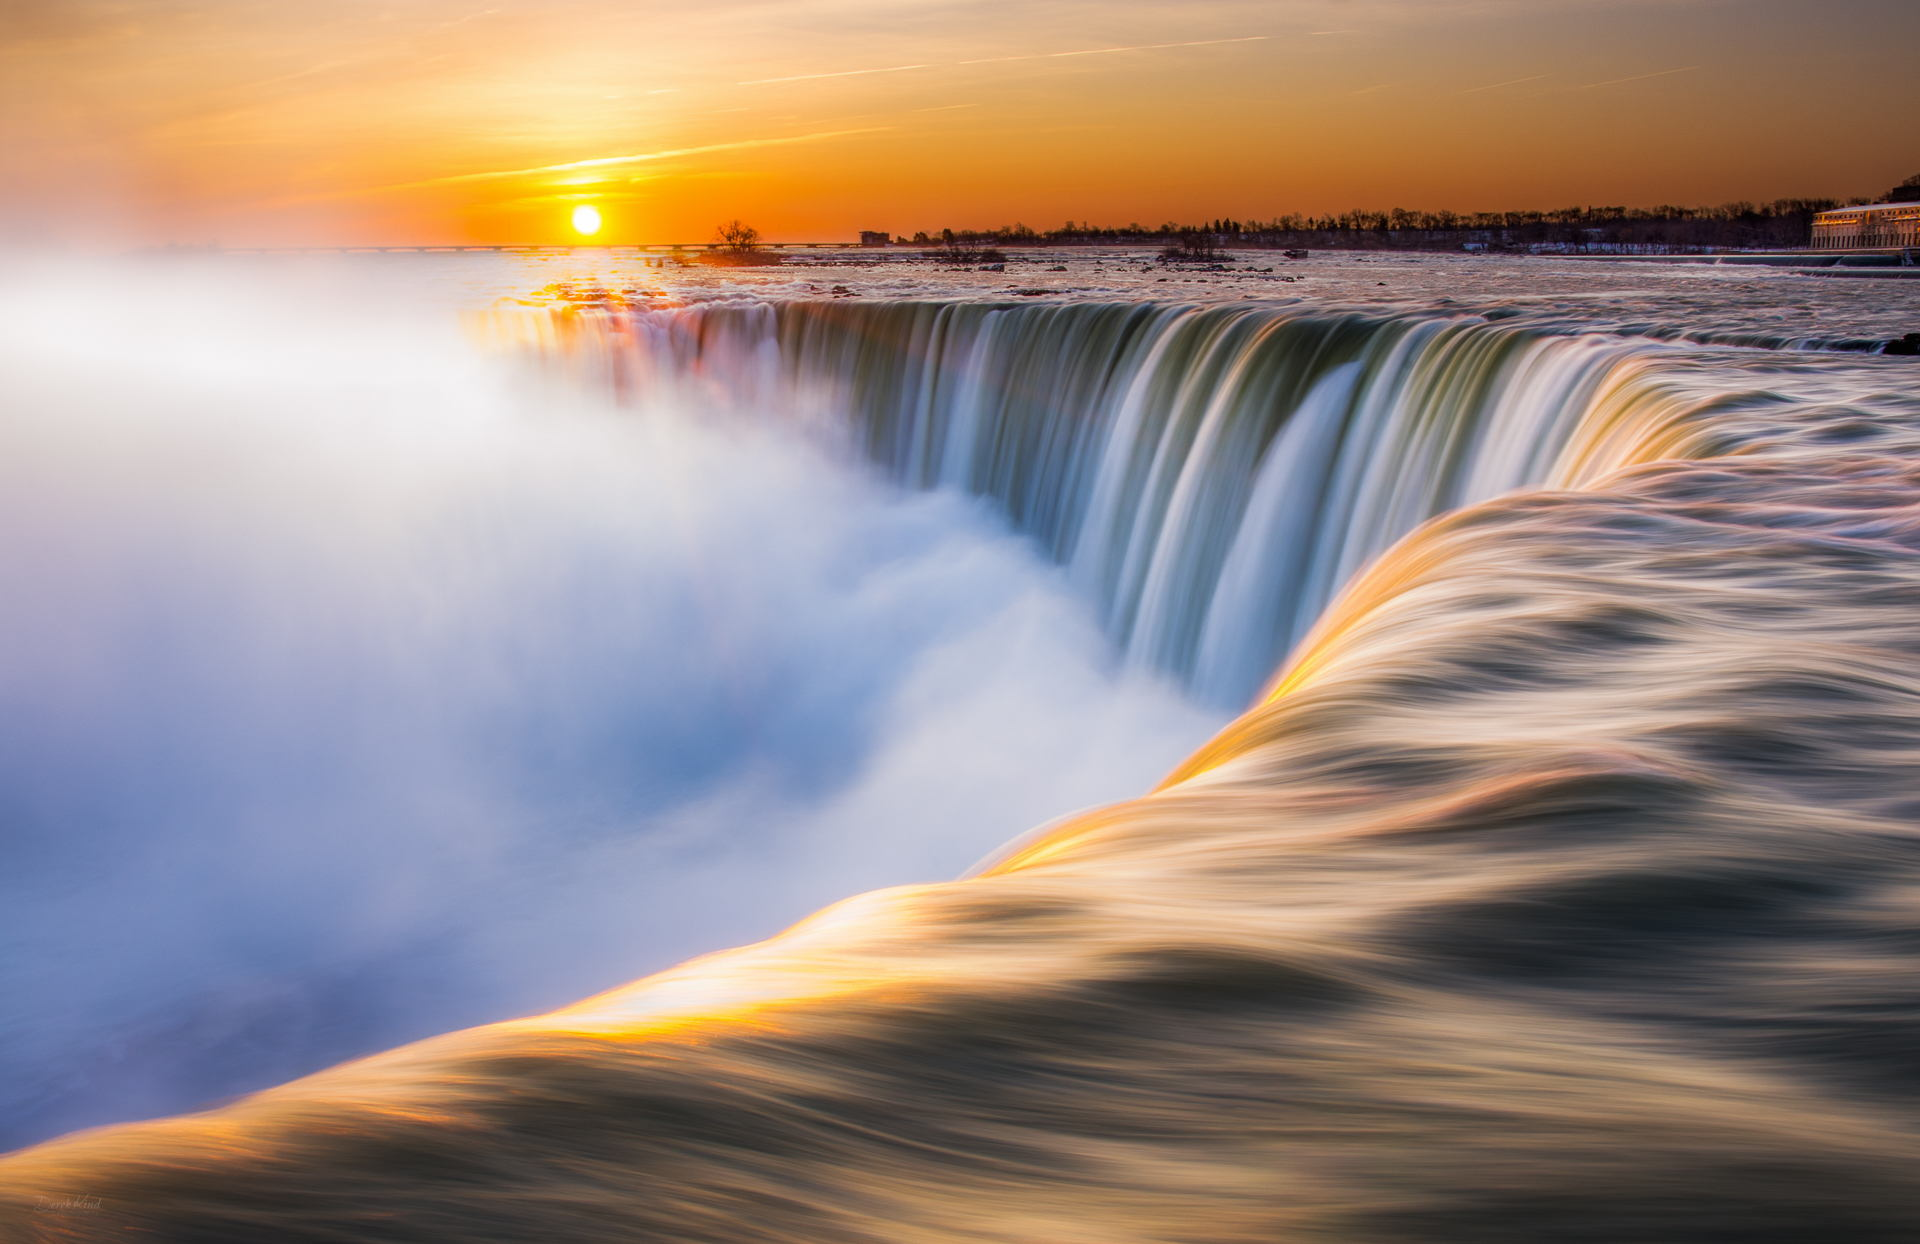 Morning at the Falls by Derek Kind